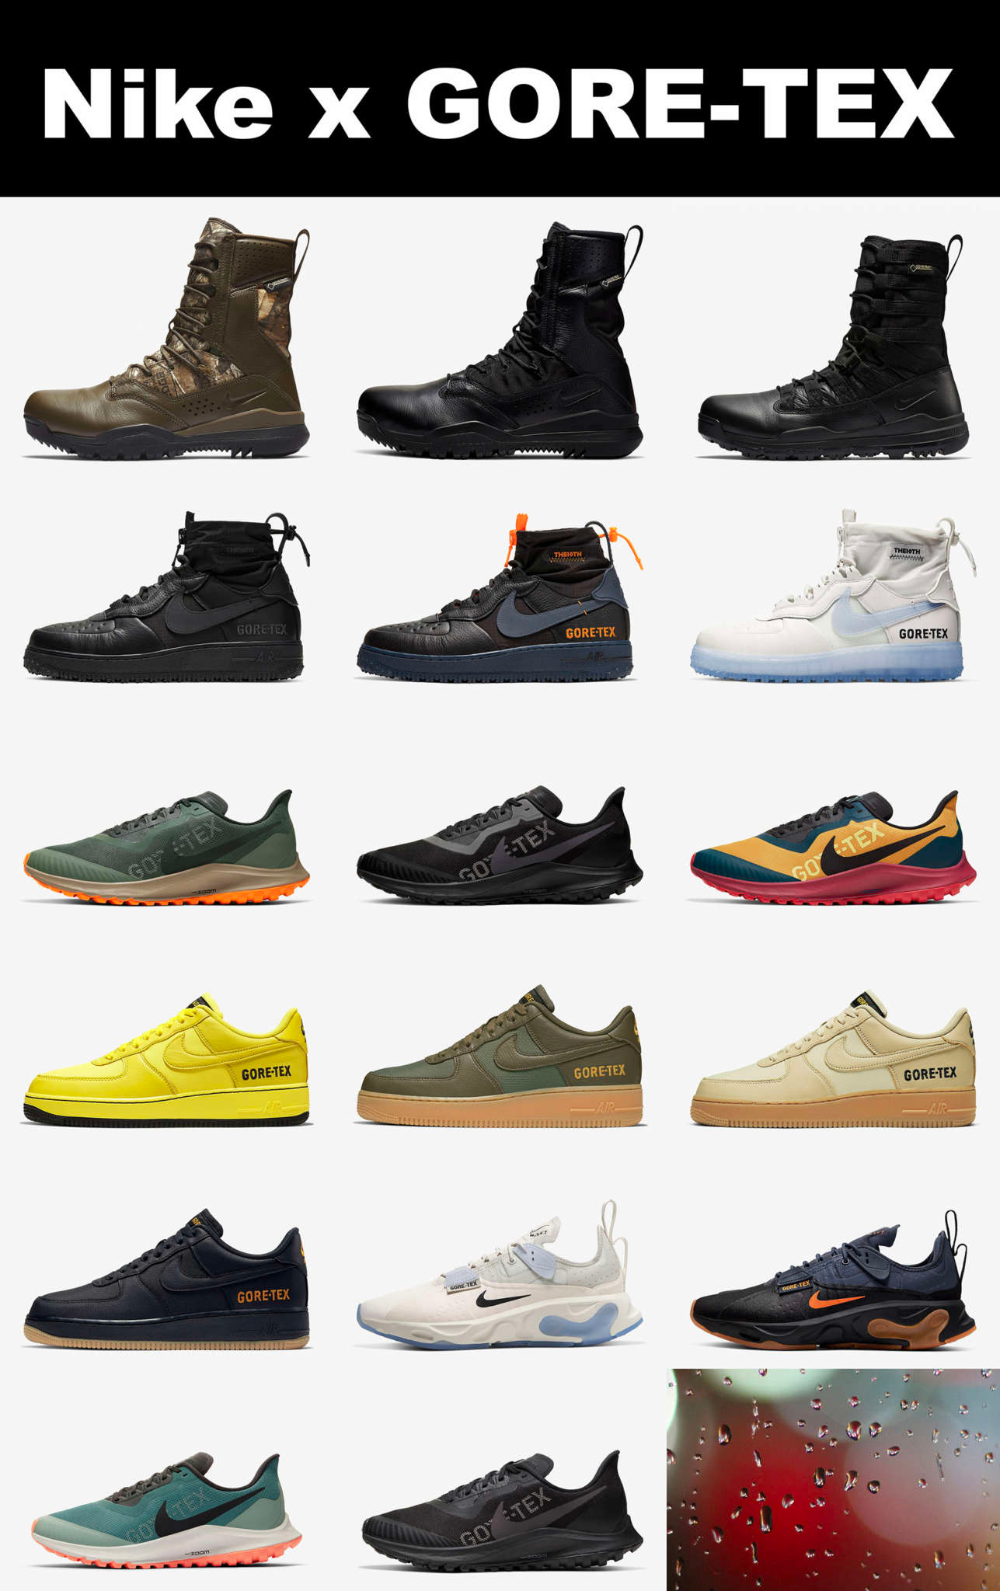 Nike Gore-Tex Sneakers \u0026 Boots for